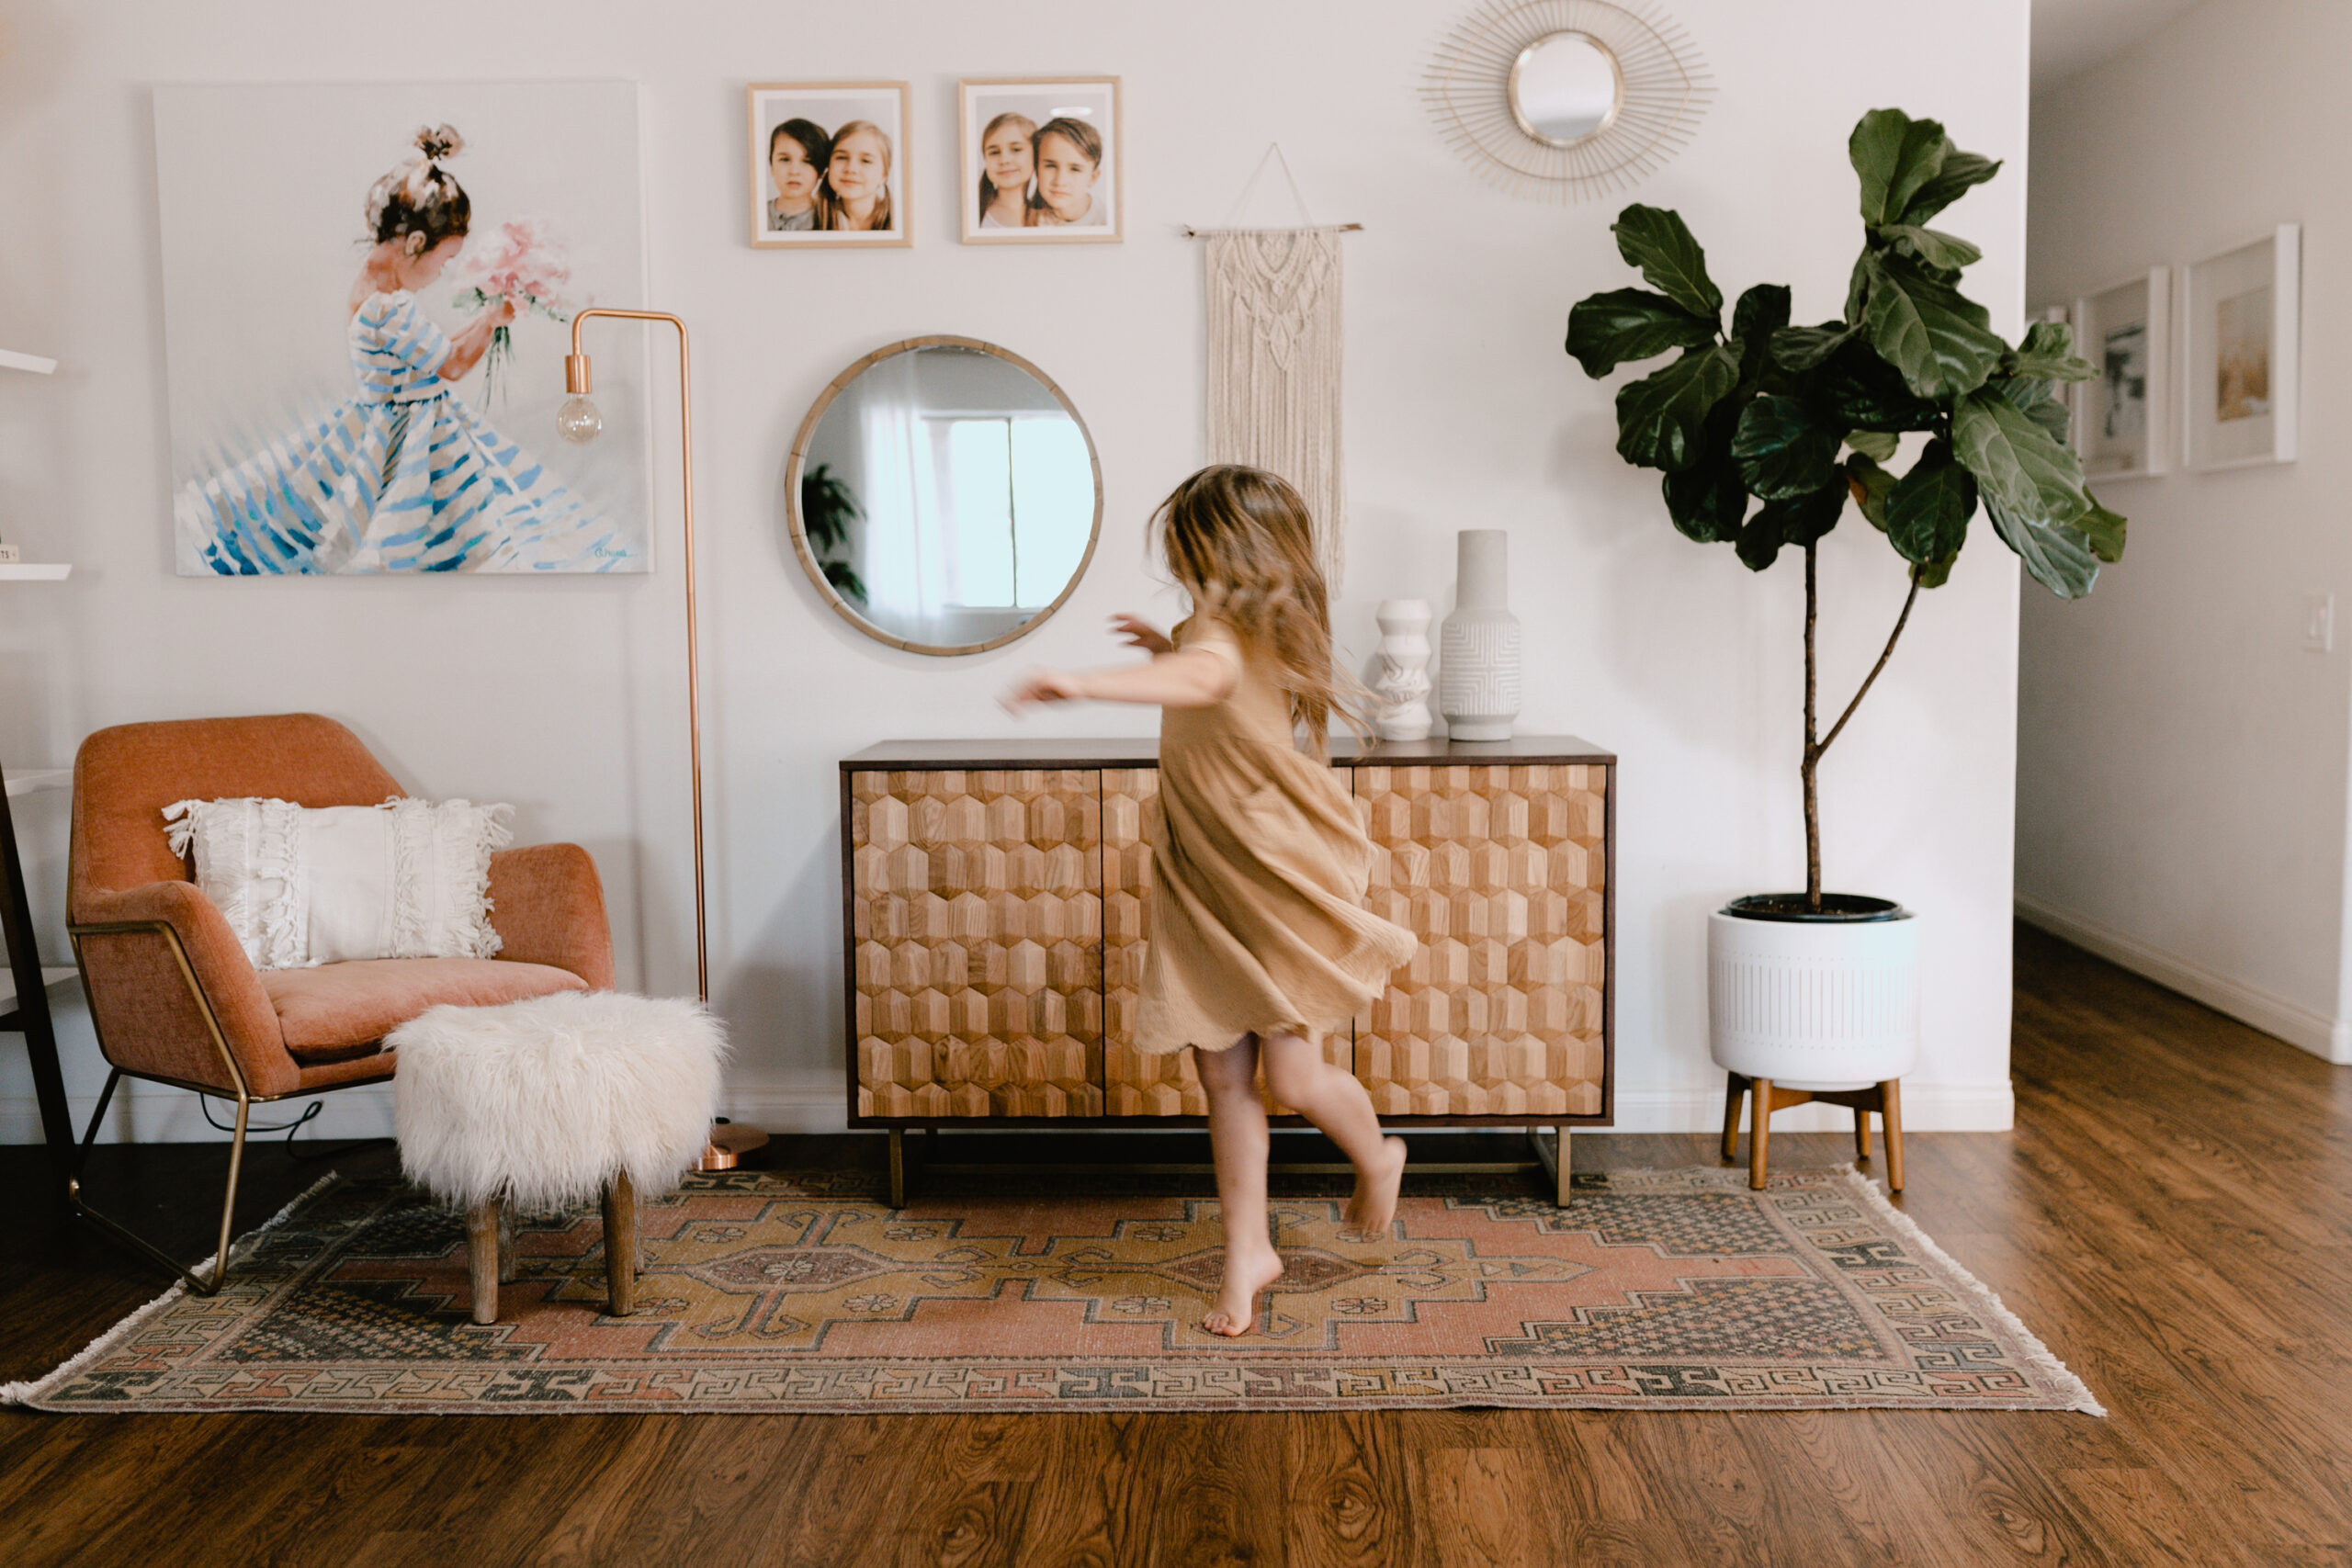 un updated corner with a beautiful dining buffet and a twirling little girl. #theldlhome #homedesign #beautifulspaces